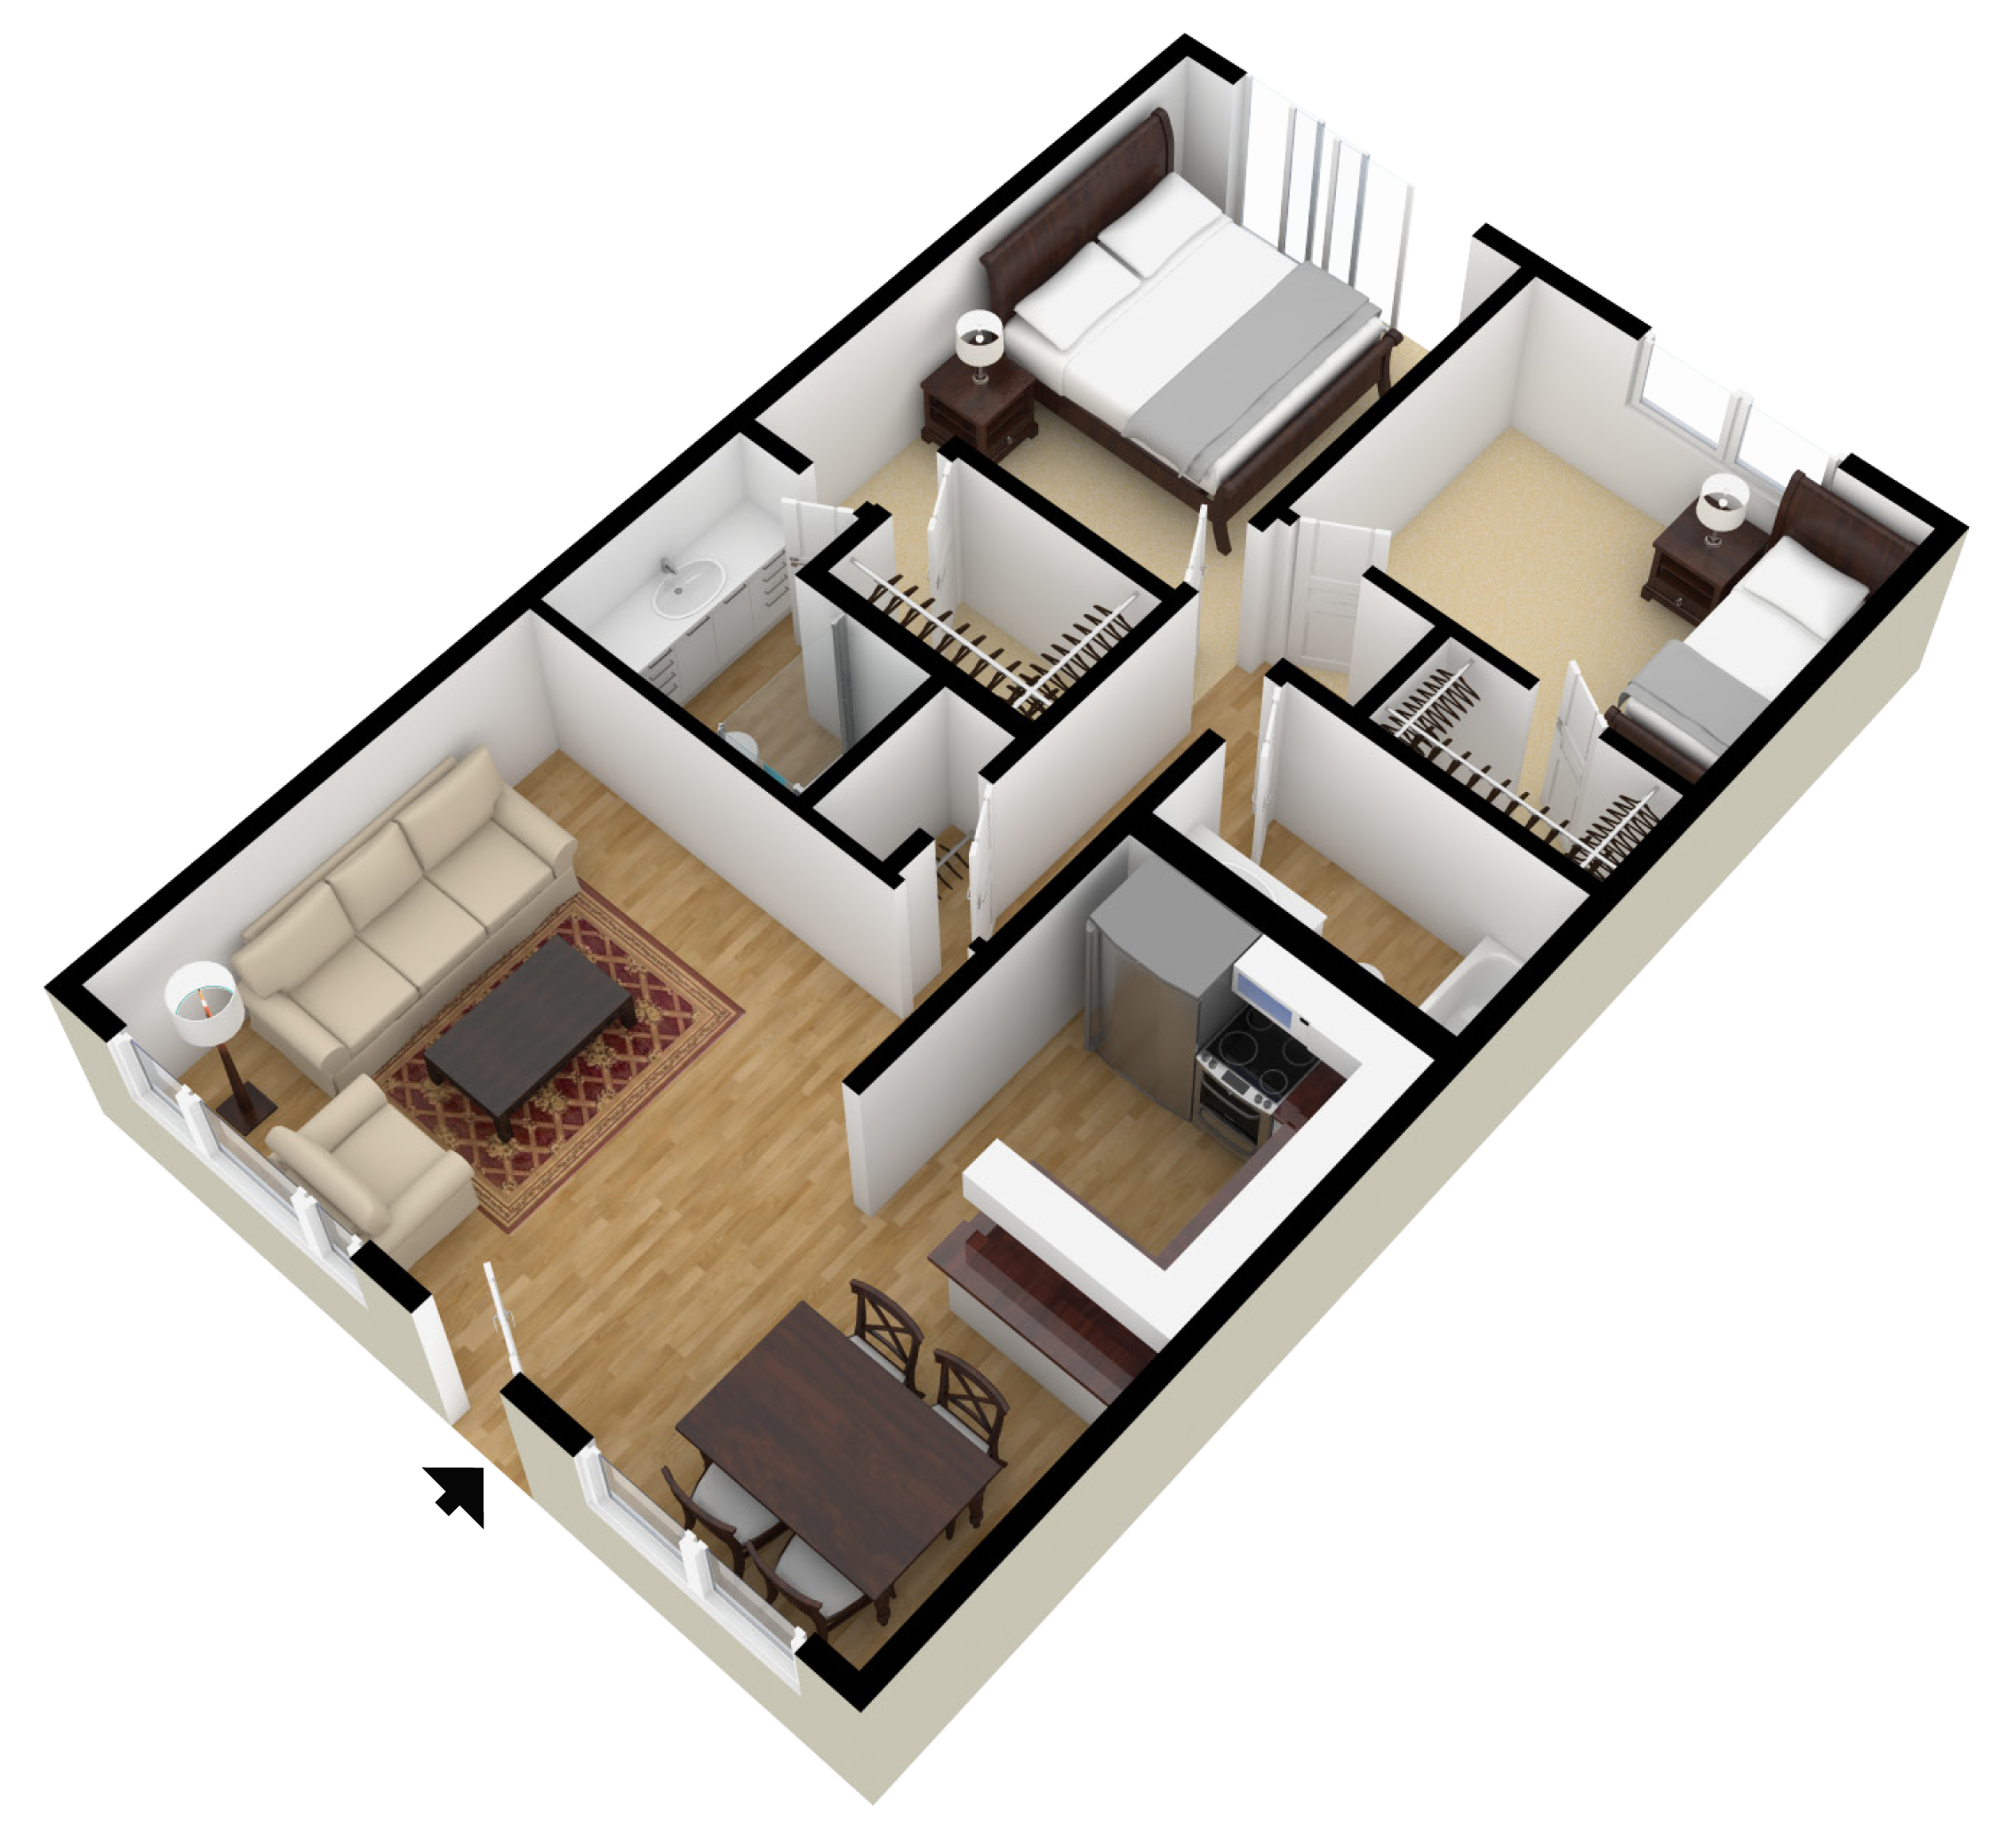 Studio 1 2 bedroom floor plans city plaza apartments for 1000 sq ft apartment plans